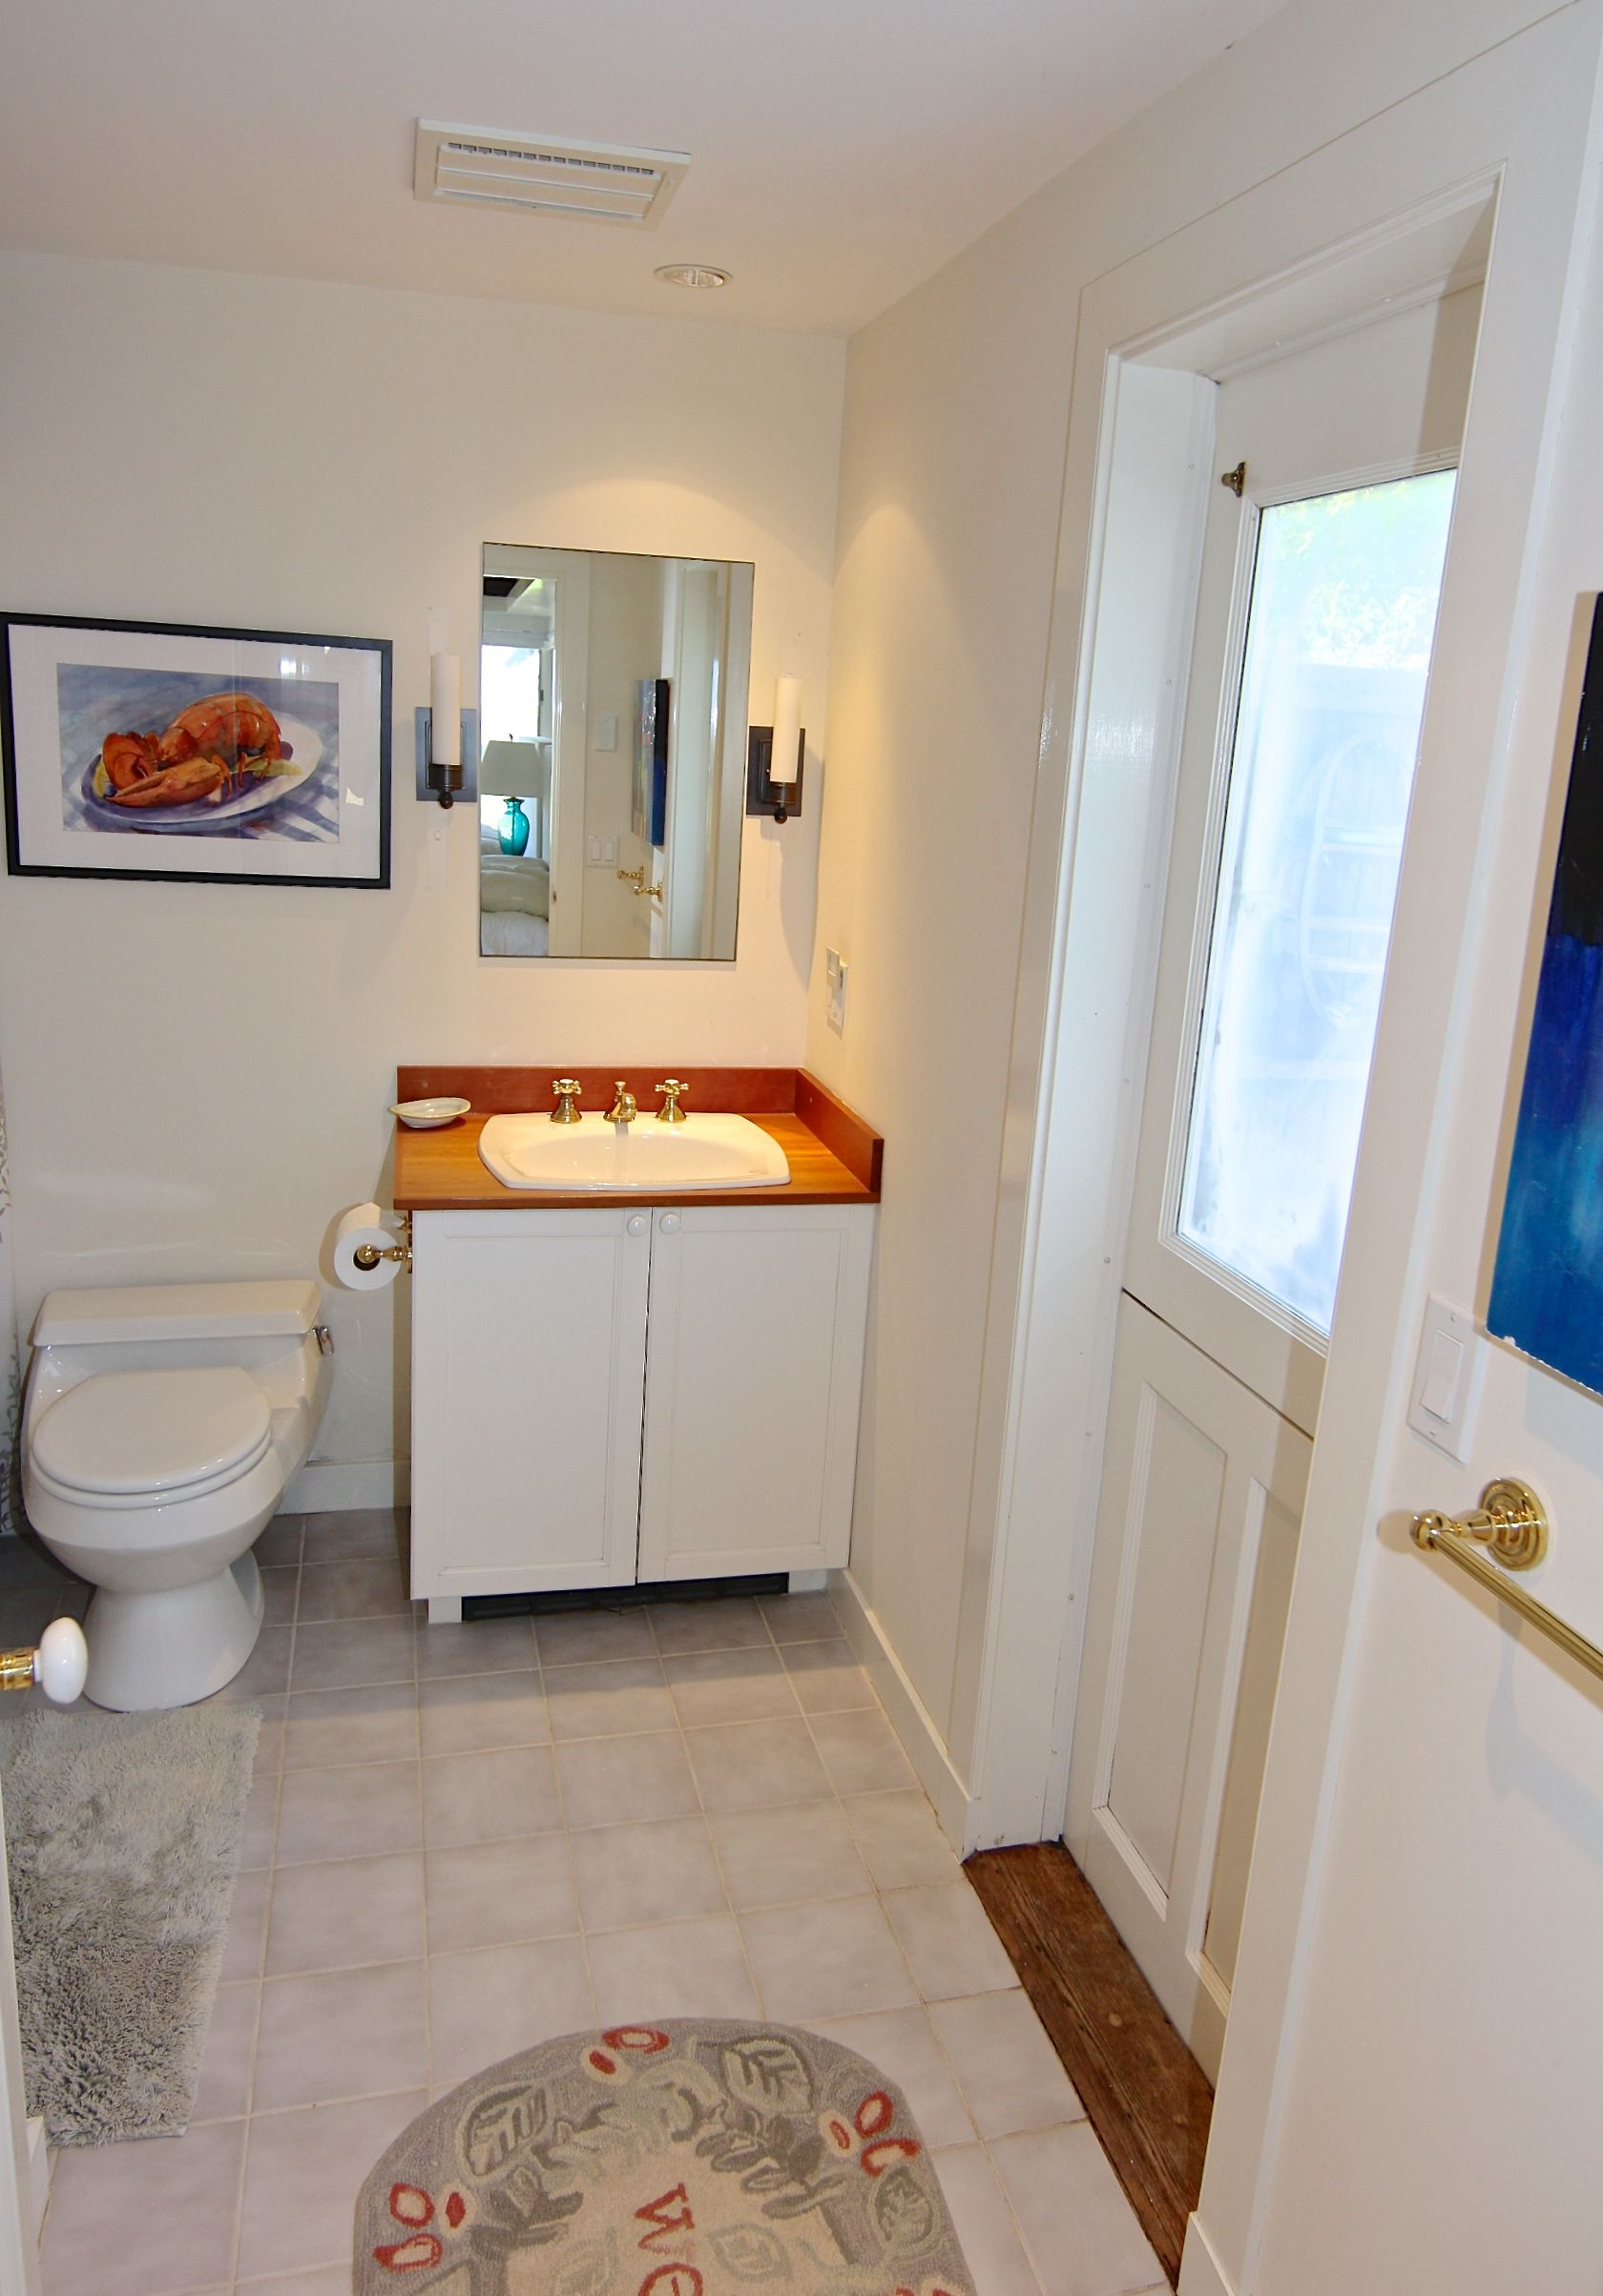 Additional photo for property listing at 28 Boldwater Road 28 Boldwater Road Edgartown, Массачусетс,02539 Соединенные Штаты